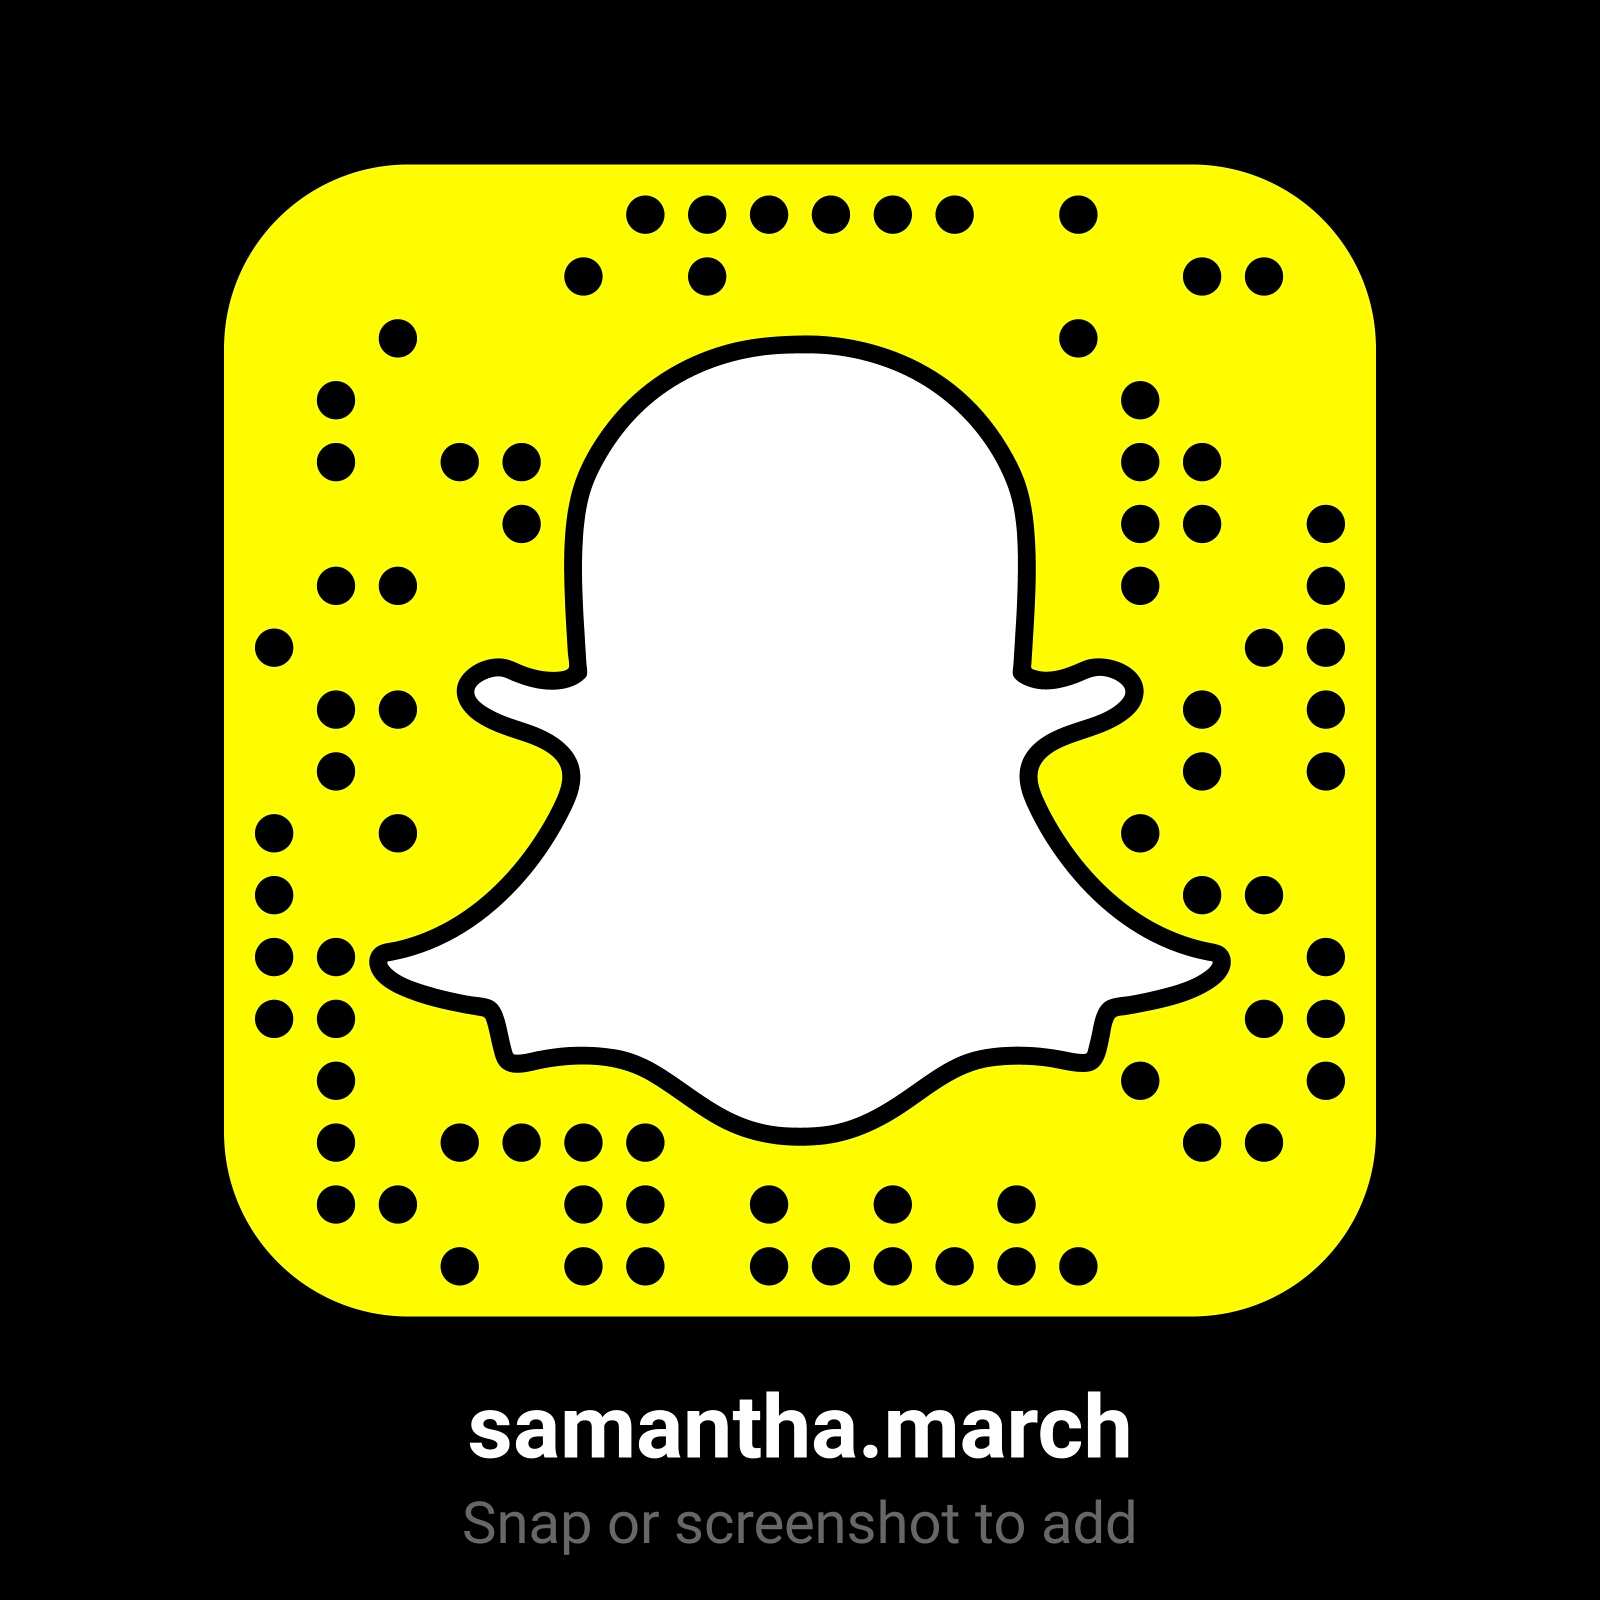 samantha.march on Snapchat